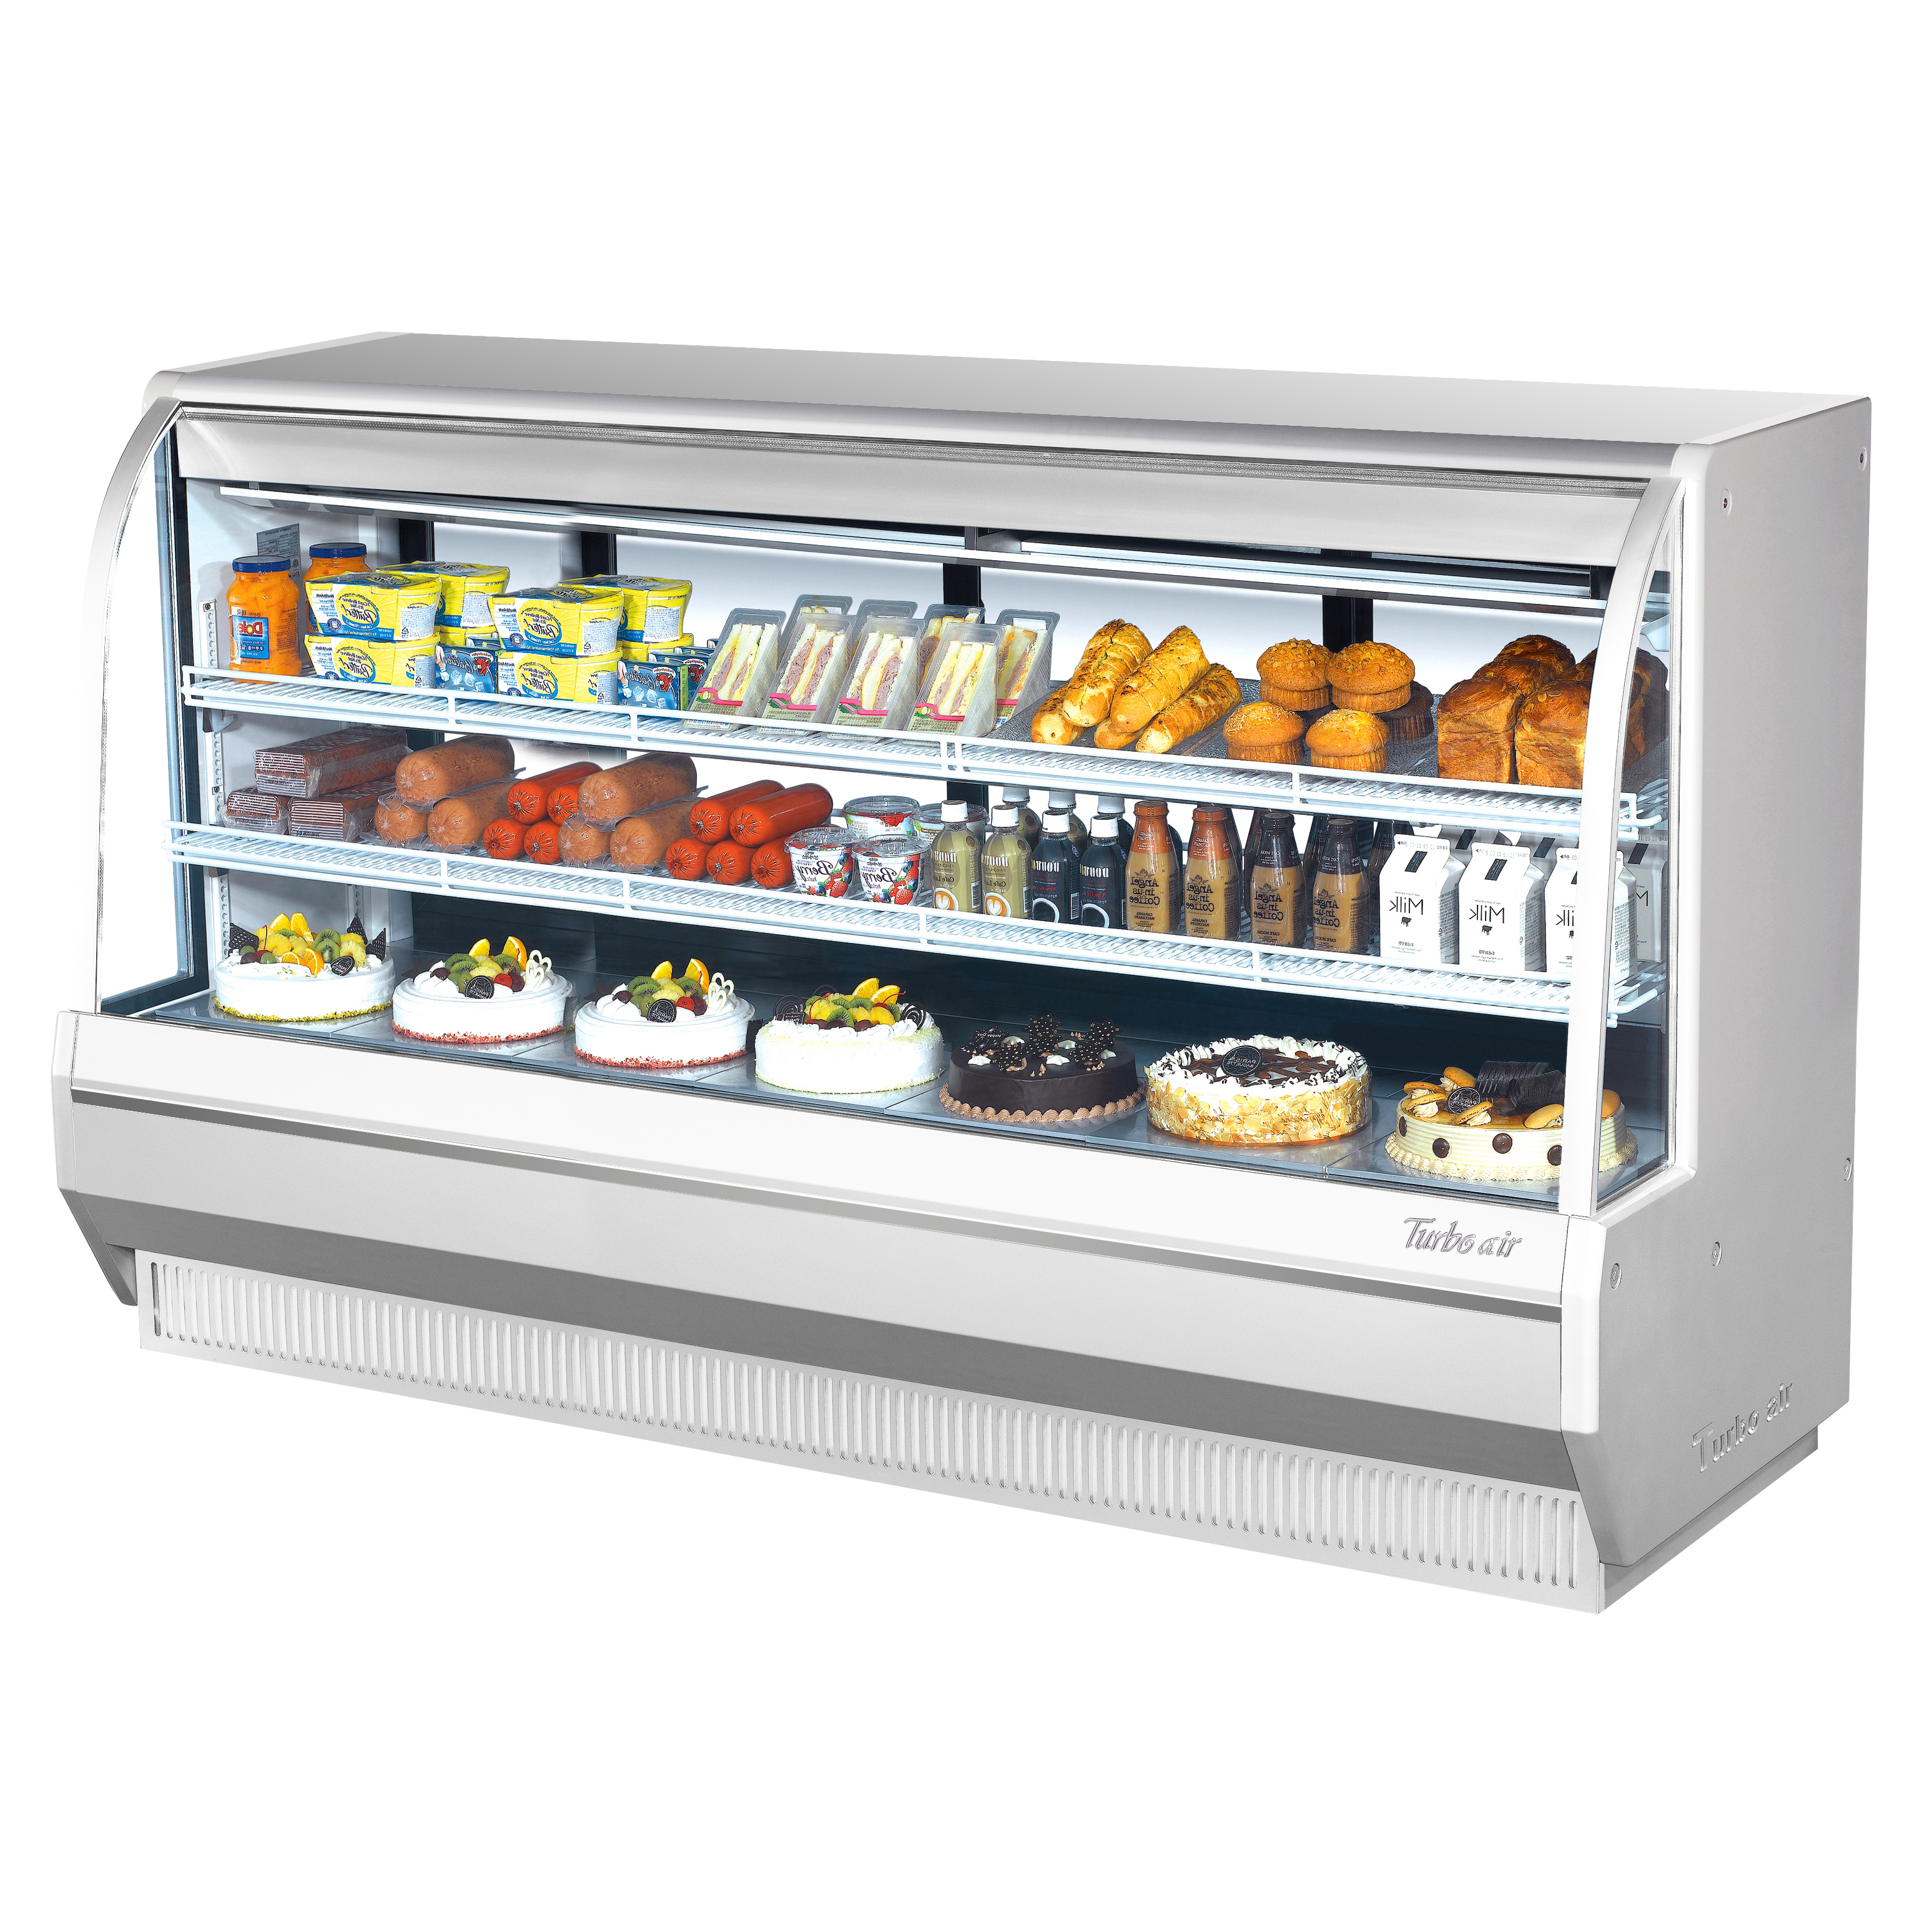 Turbo Air TCDD-96H-W(B)-N display case, refrigerated deli